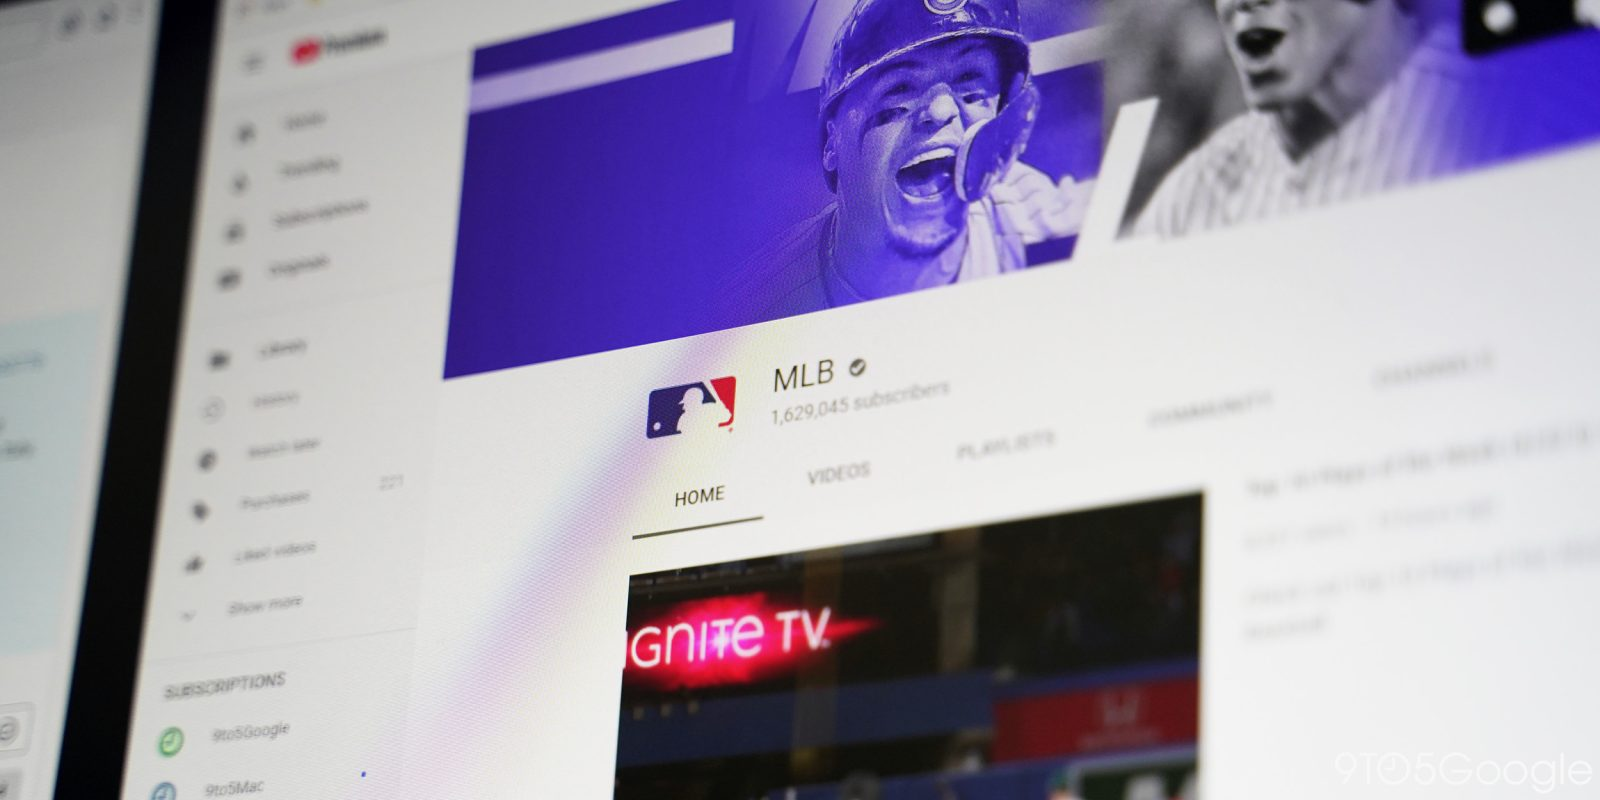 YouTube will exclusively stream 13 MLB games this season